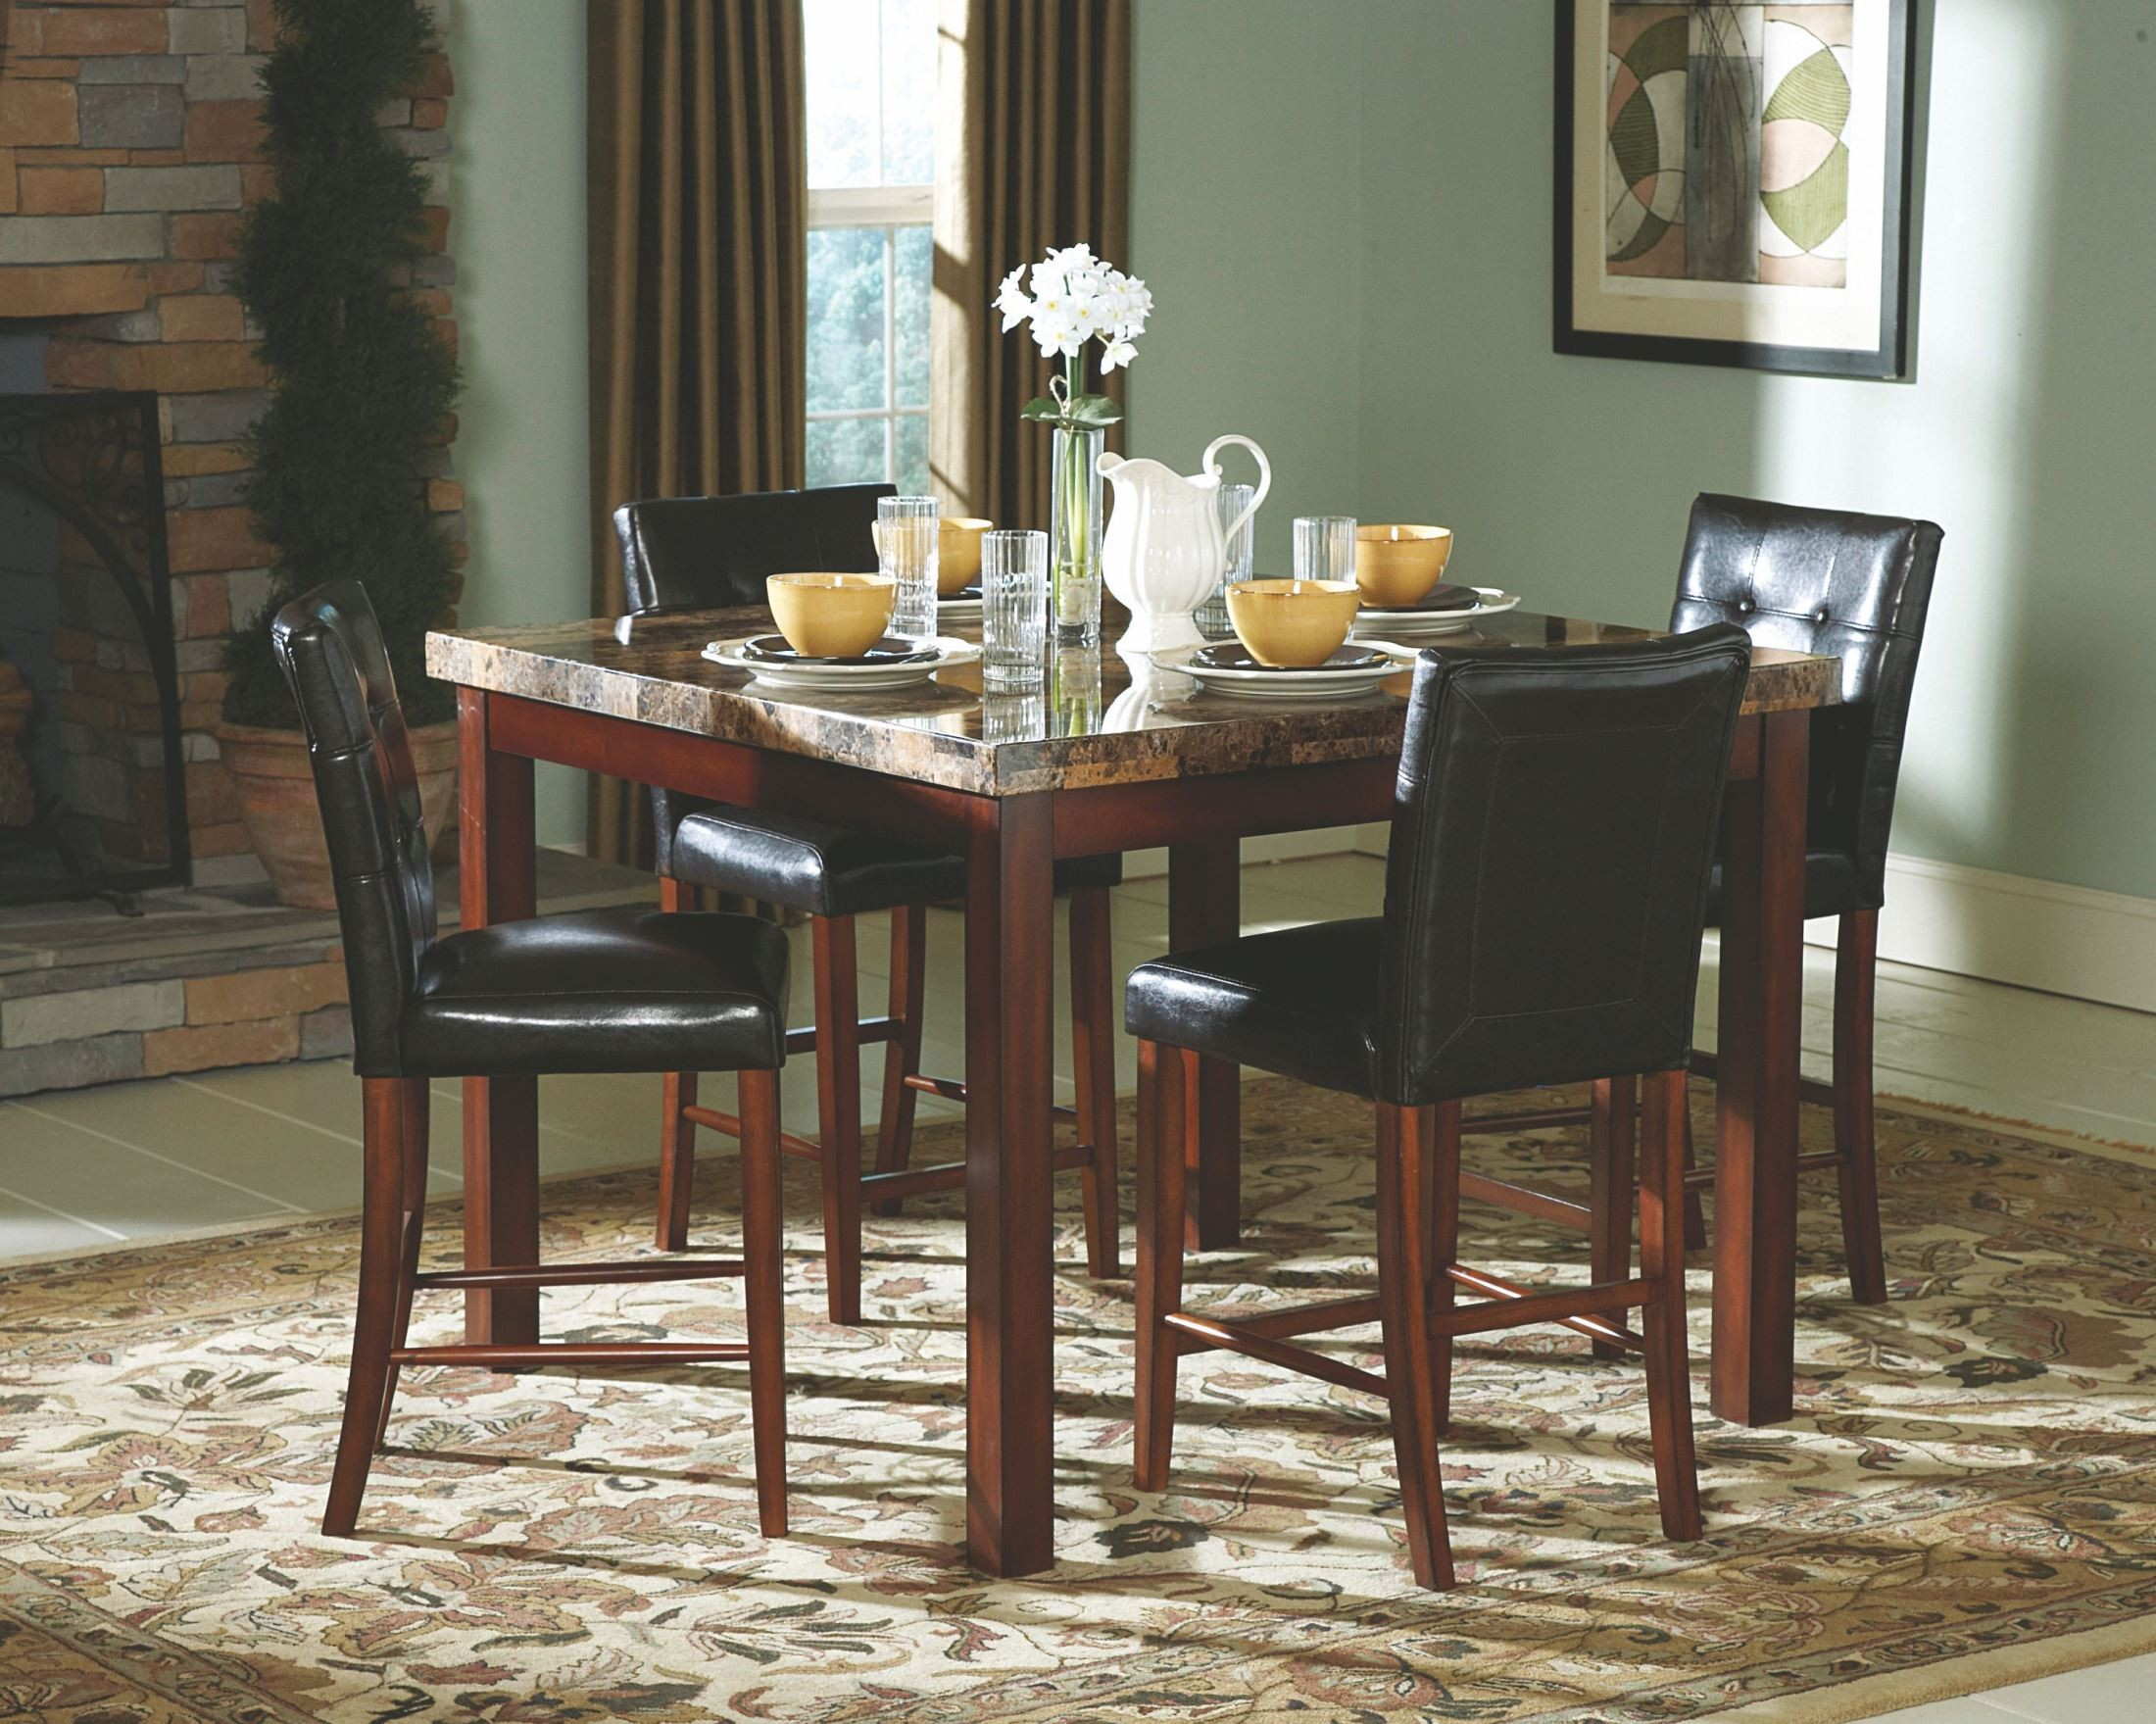 Counter Height Dining Tables: Achillea Faux Marble Counter Height Dining Room Set From